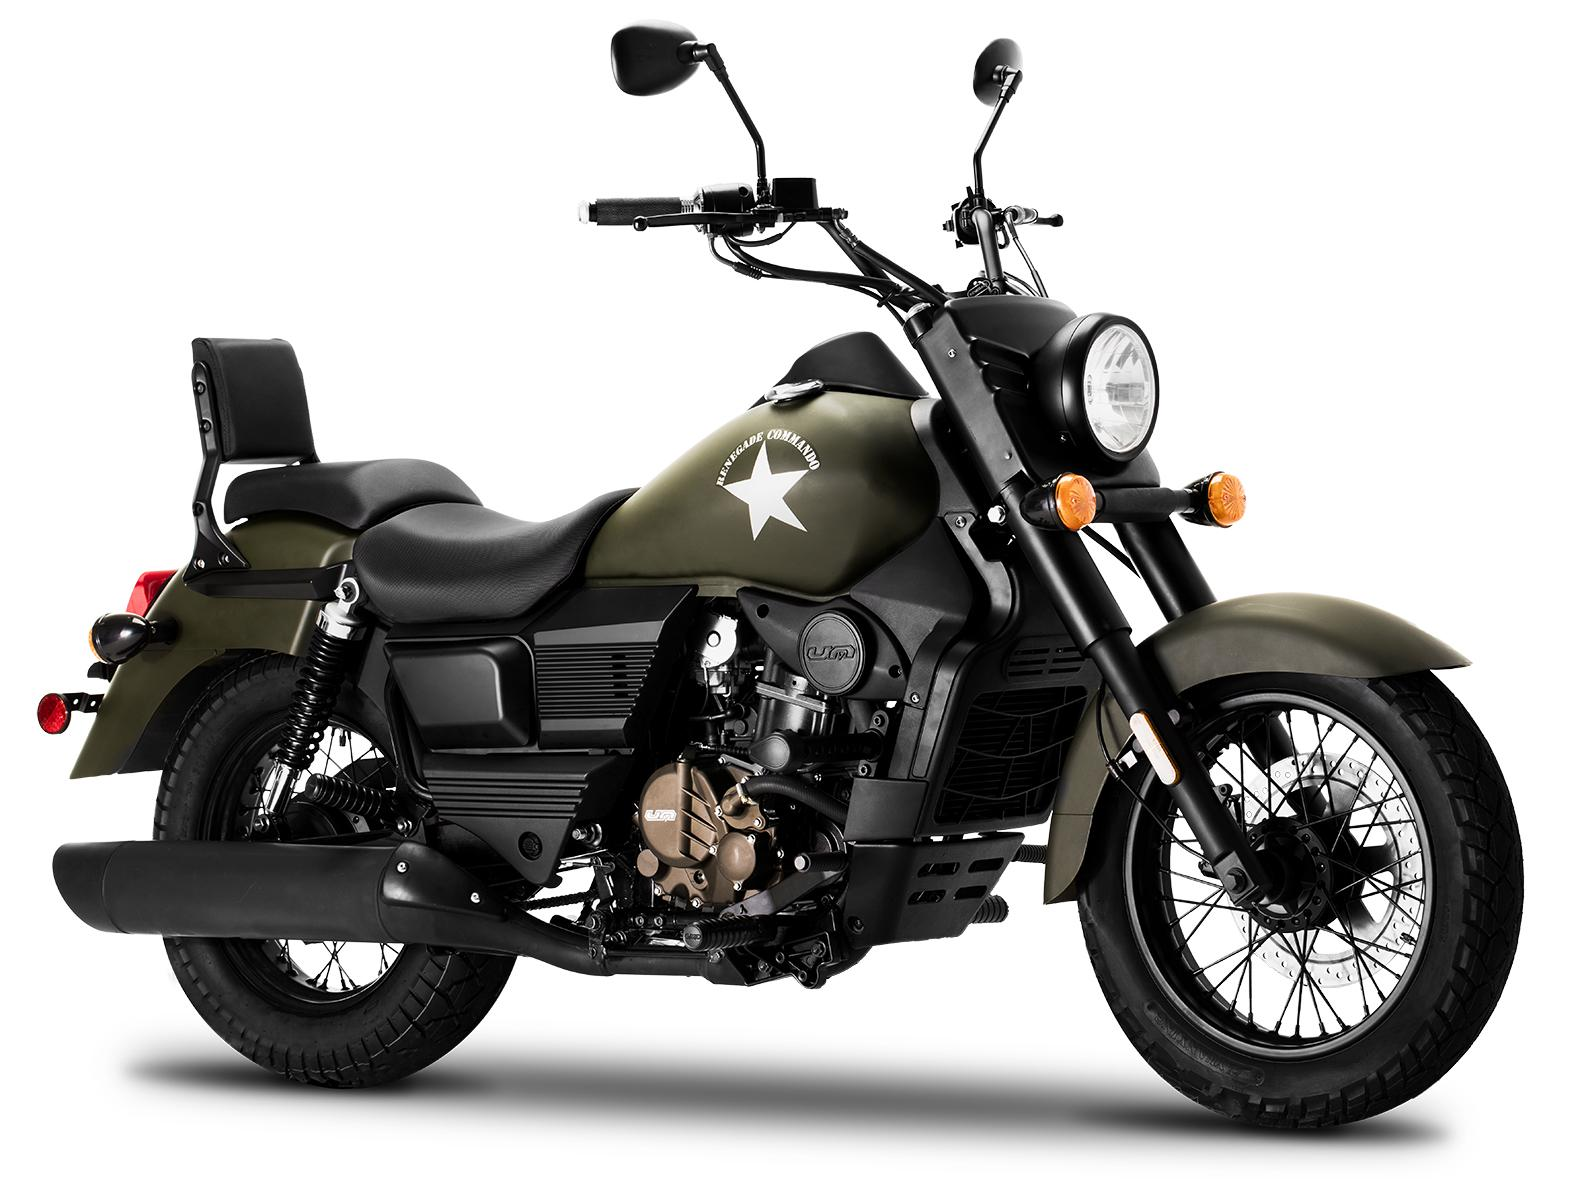 Renegade Commando 300 (RESERVATION FEE ONLY)